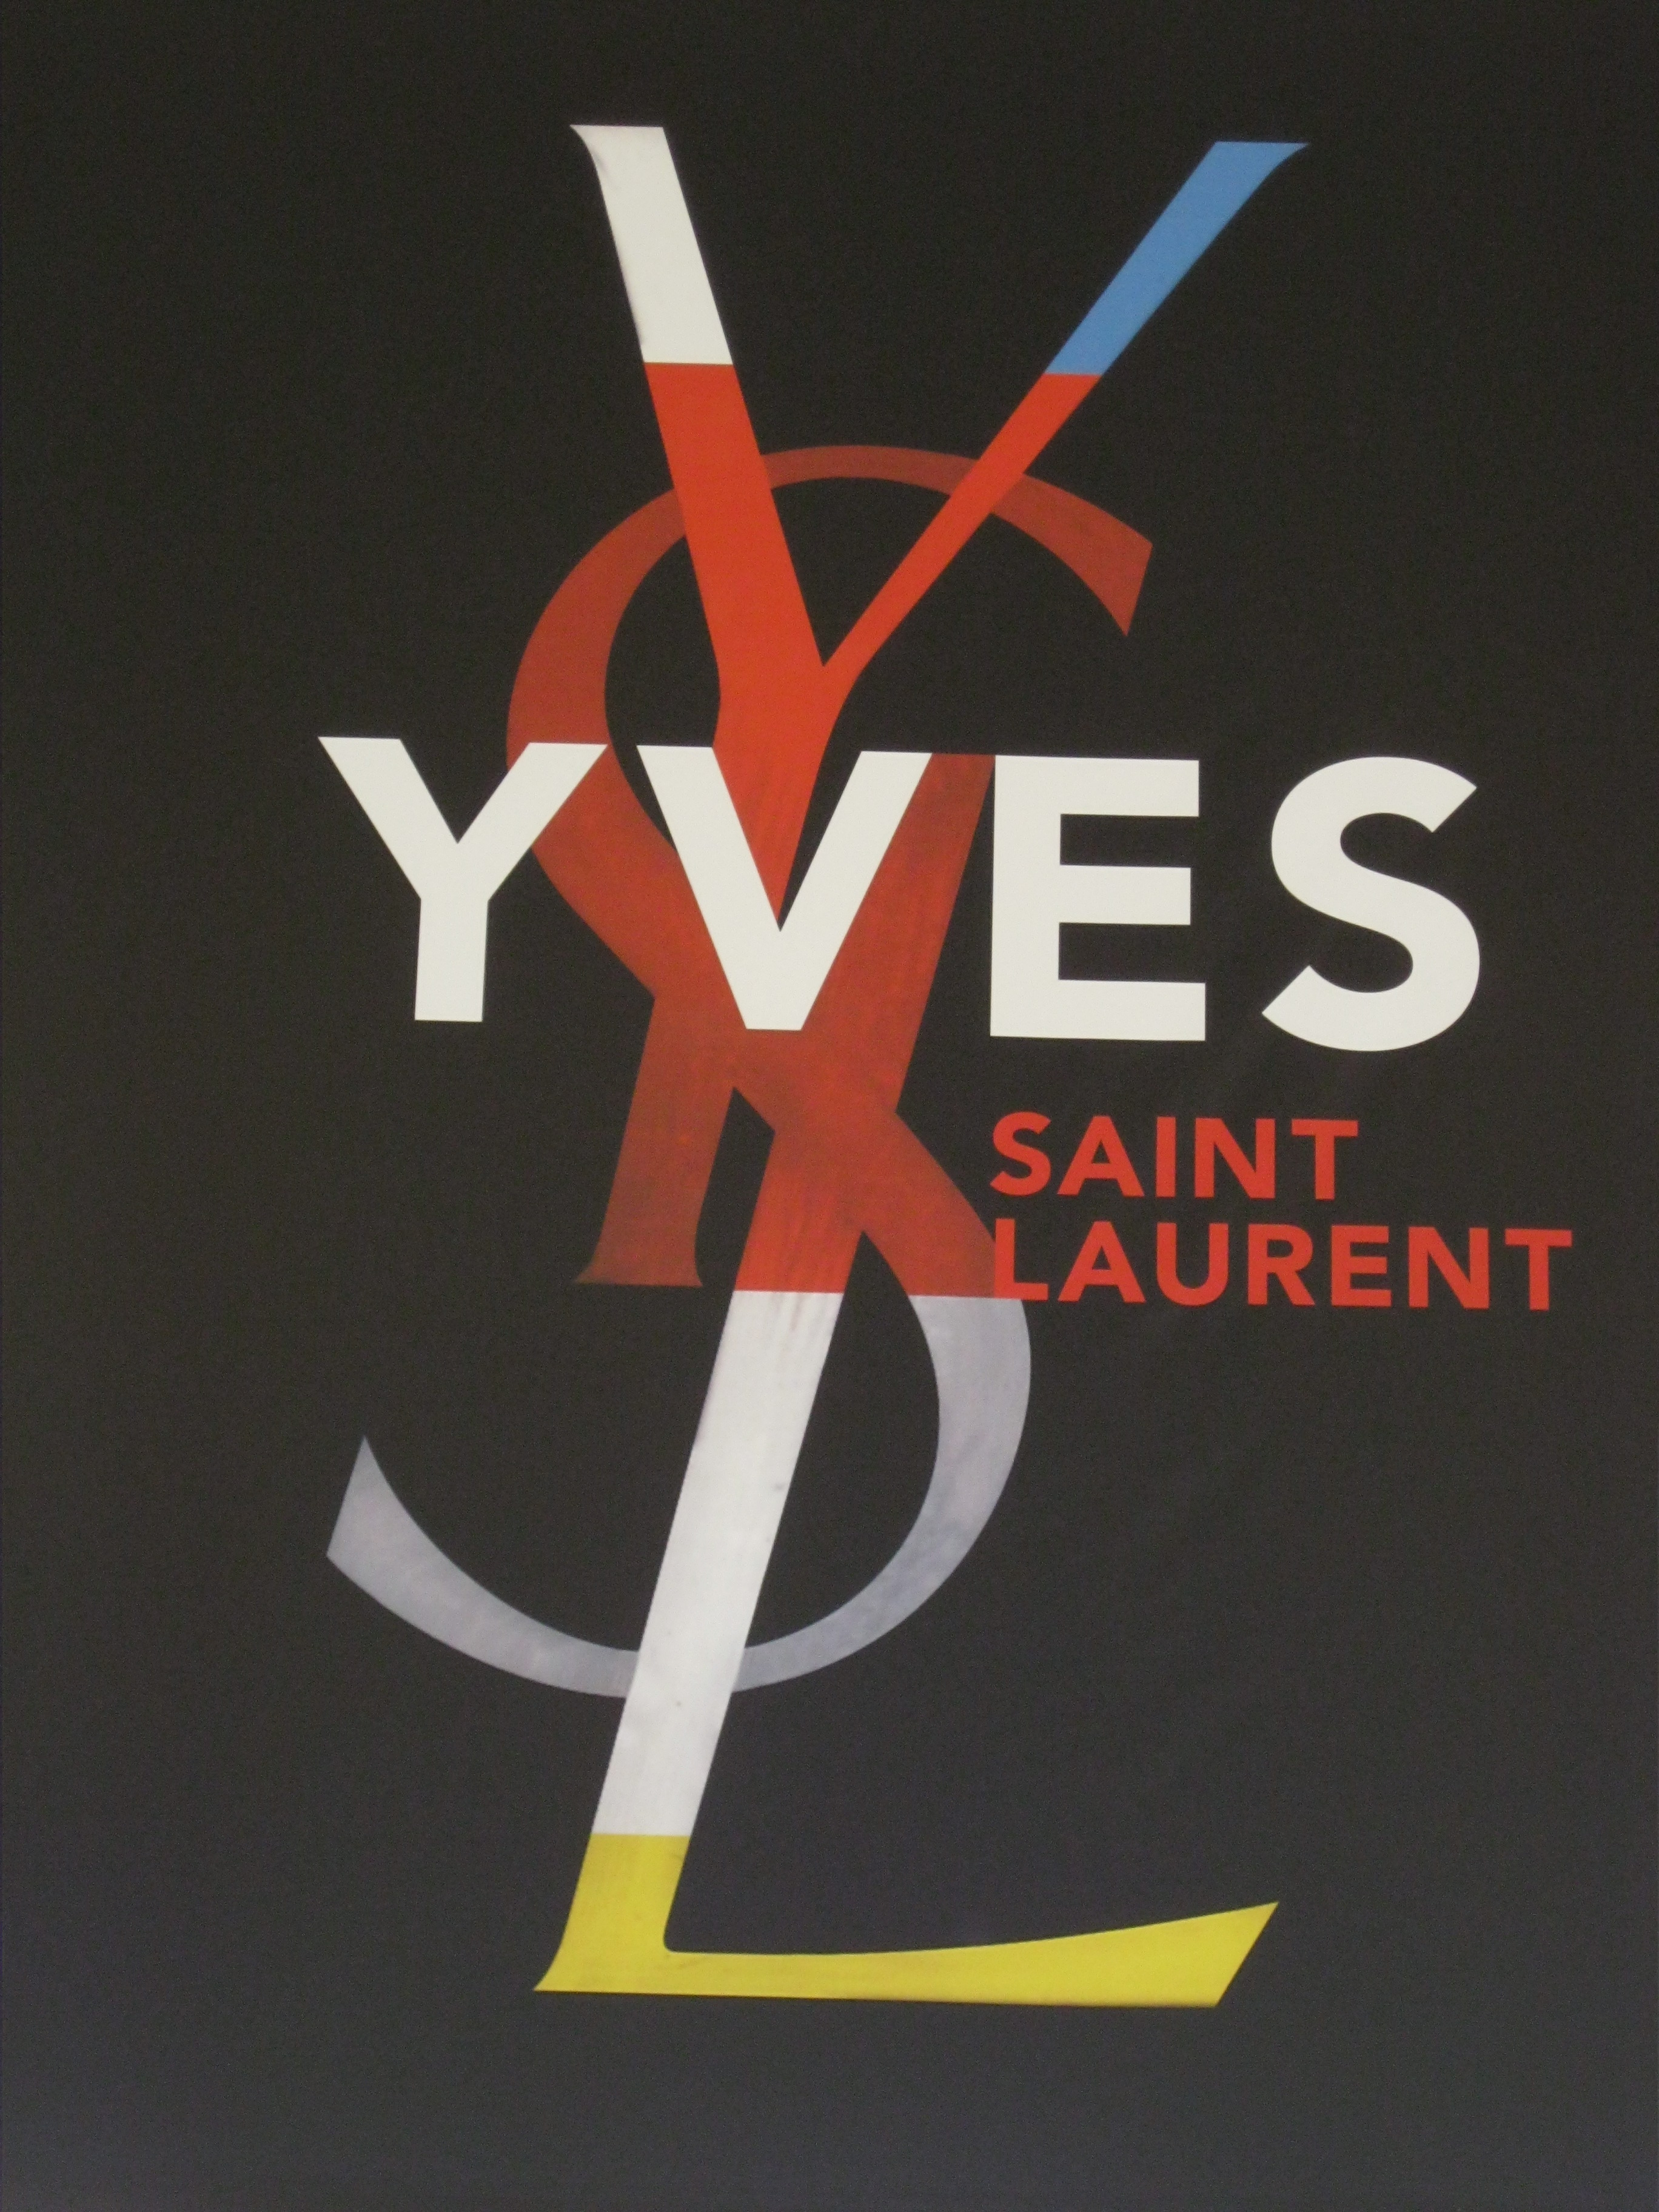 Yves Saint Laurent co-founder's rare art and artefacts to go on sale